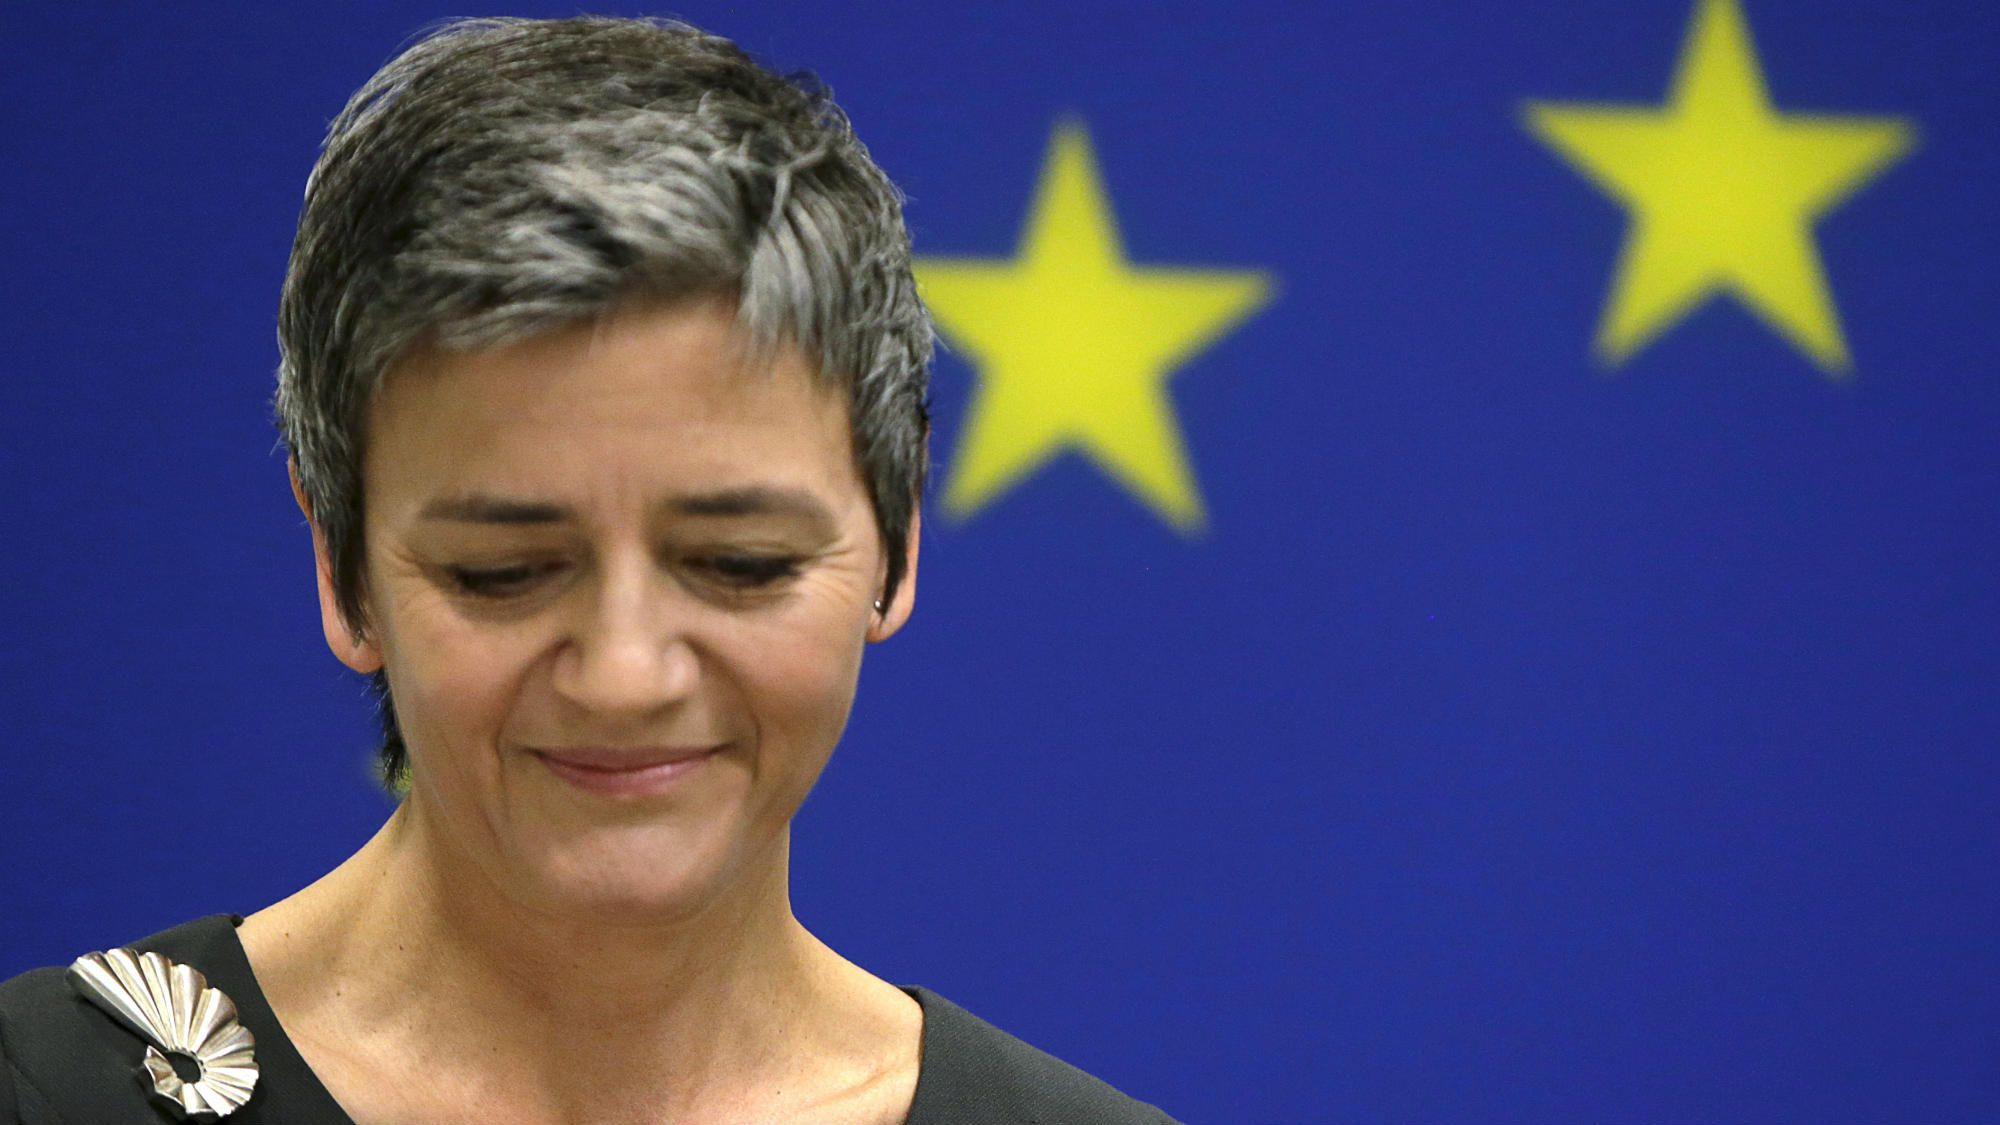 European Union Commissioner for Competition Margrethe Vestager pauses during a news conference at the EU Delegation in Washington April 16, 2015. The EU accused Google Inc. on Wednesday of cheating consumers and competitors by distorting web search results and also launched an antitrust probe into the internet search giant's Android system. REUTERS/Gary Cameron